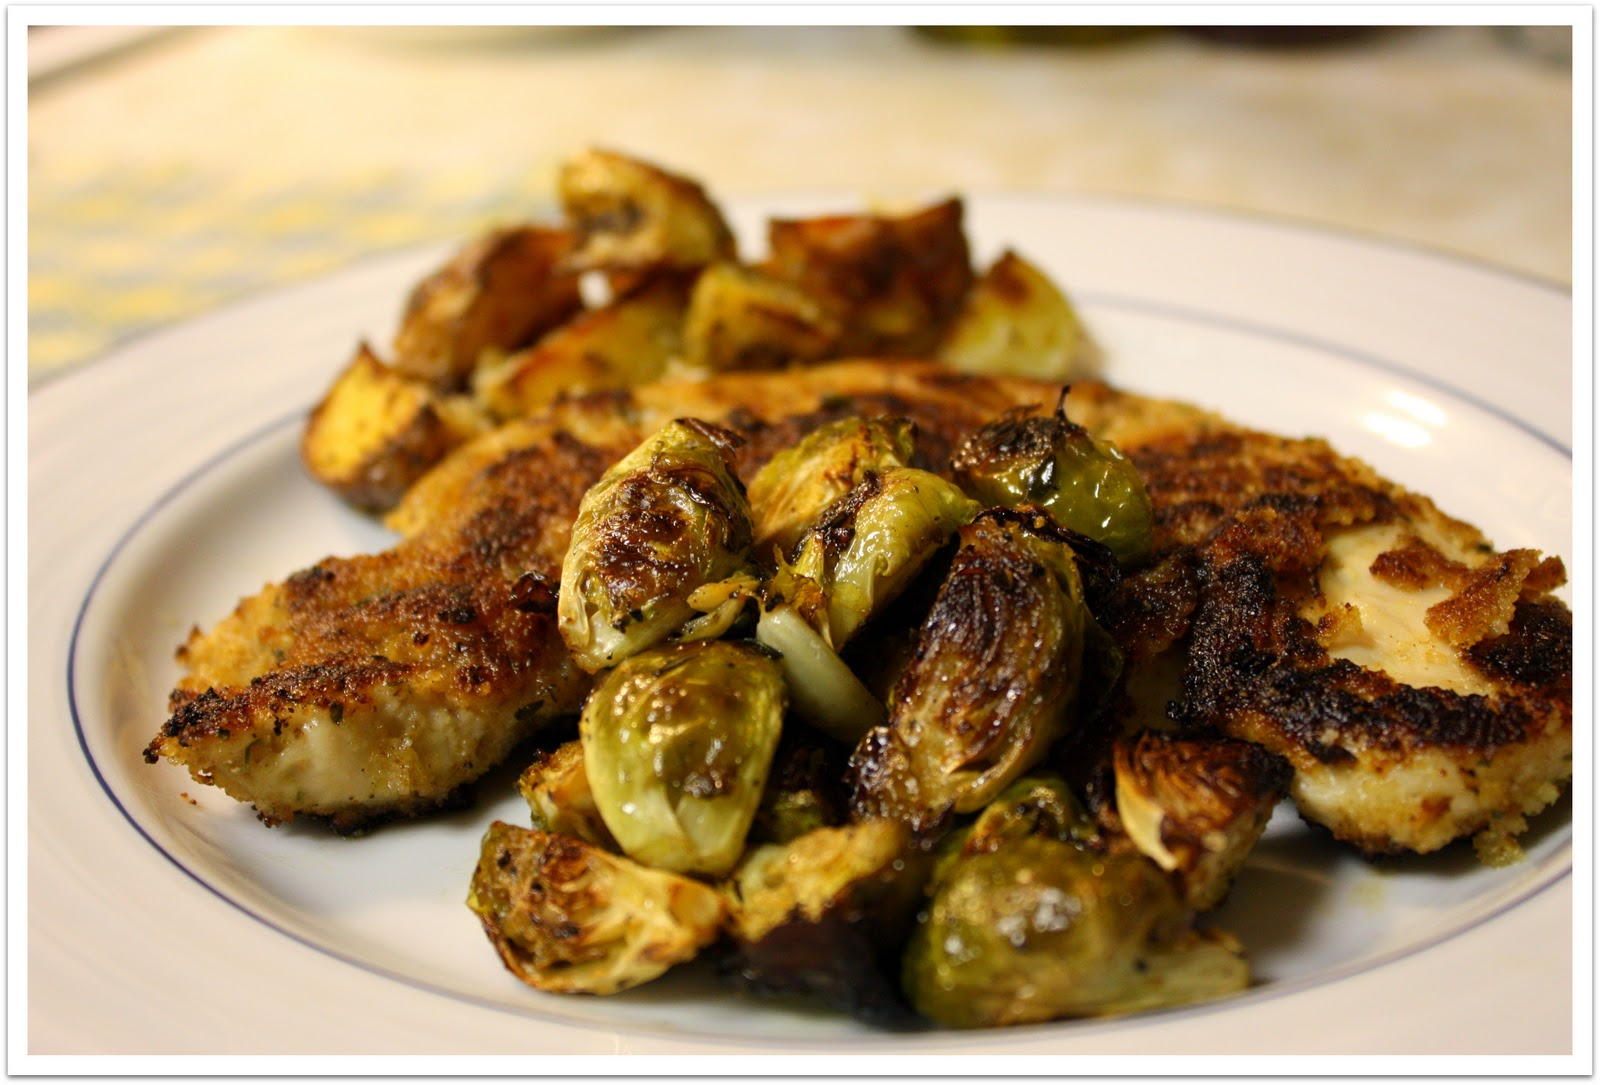 ... Honey Dijon Chicken fillets with Maple Roasted Brussel Sprouts